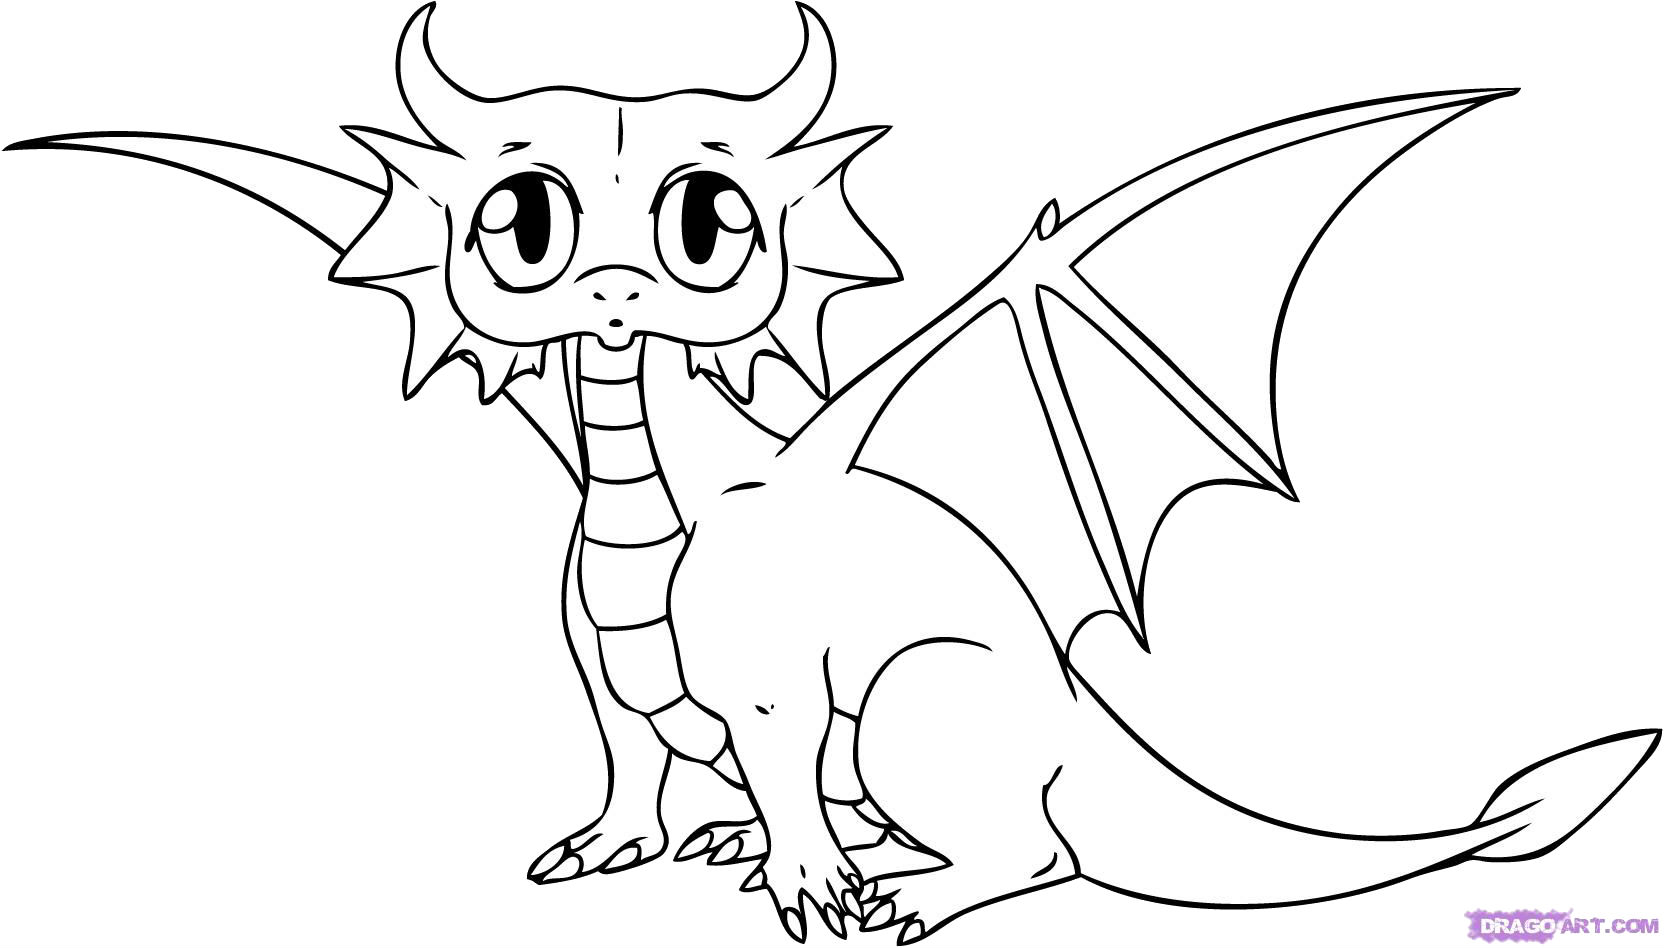 1664x948 Baby Dragon Coloring Pages Funycoloring